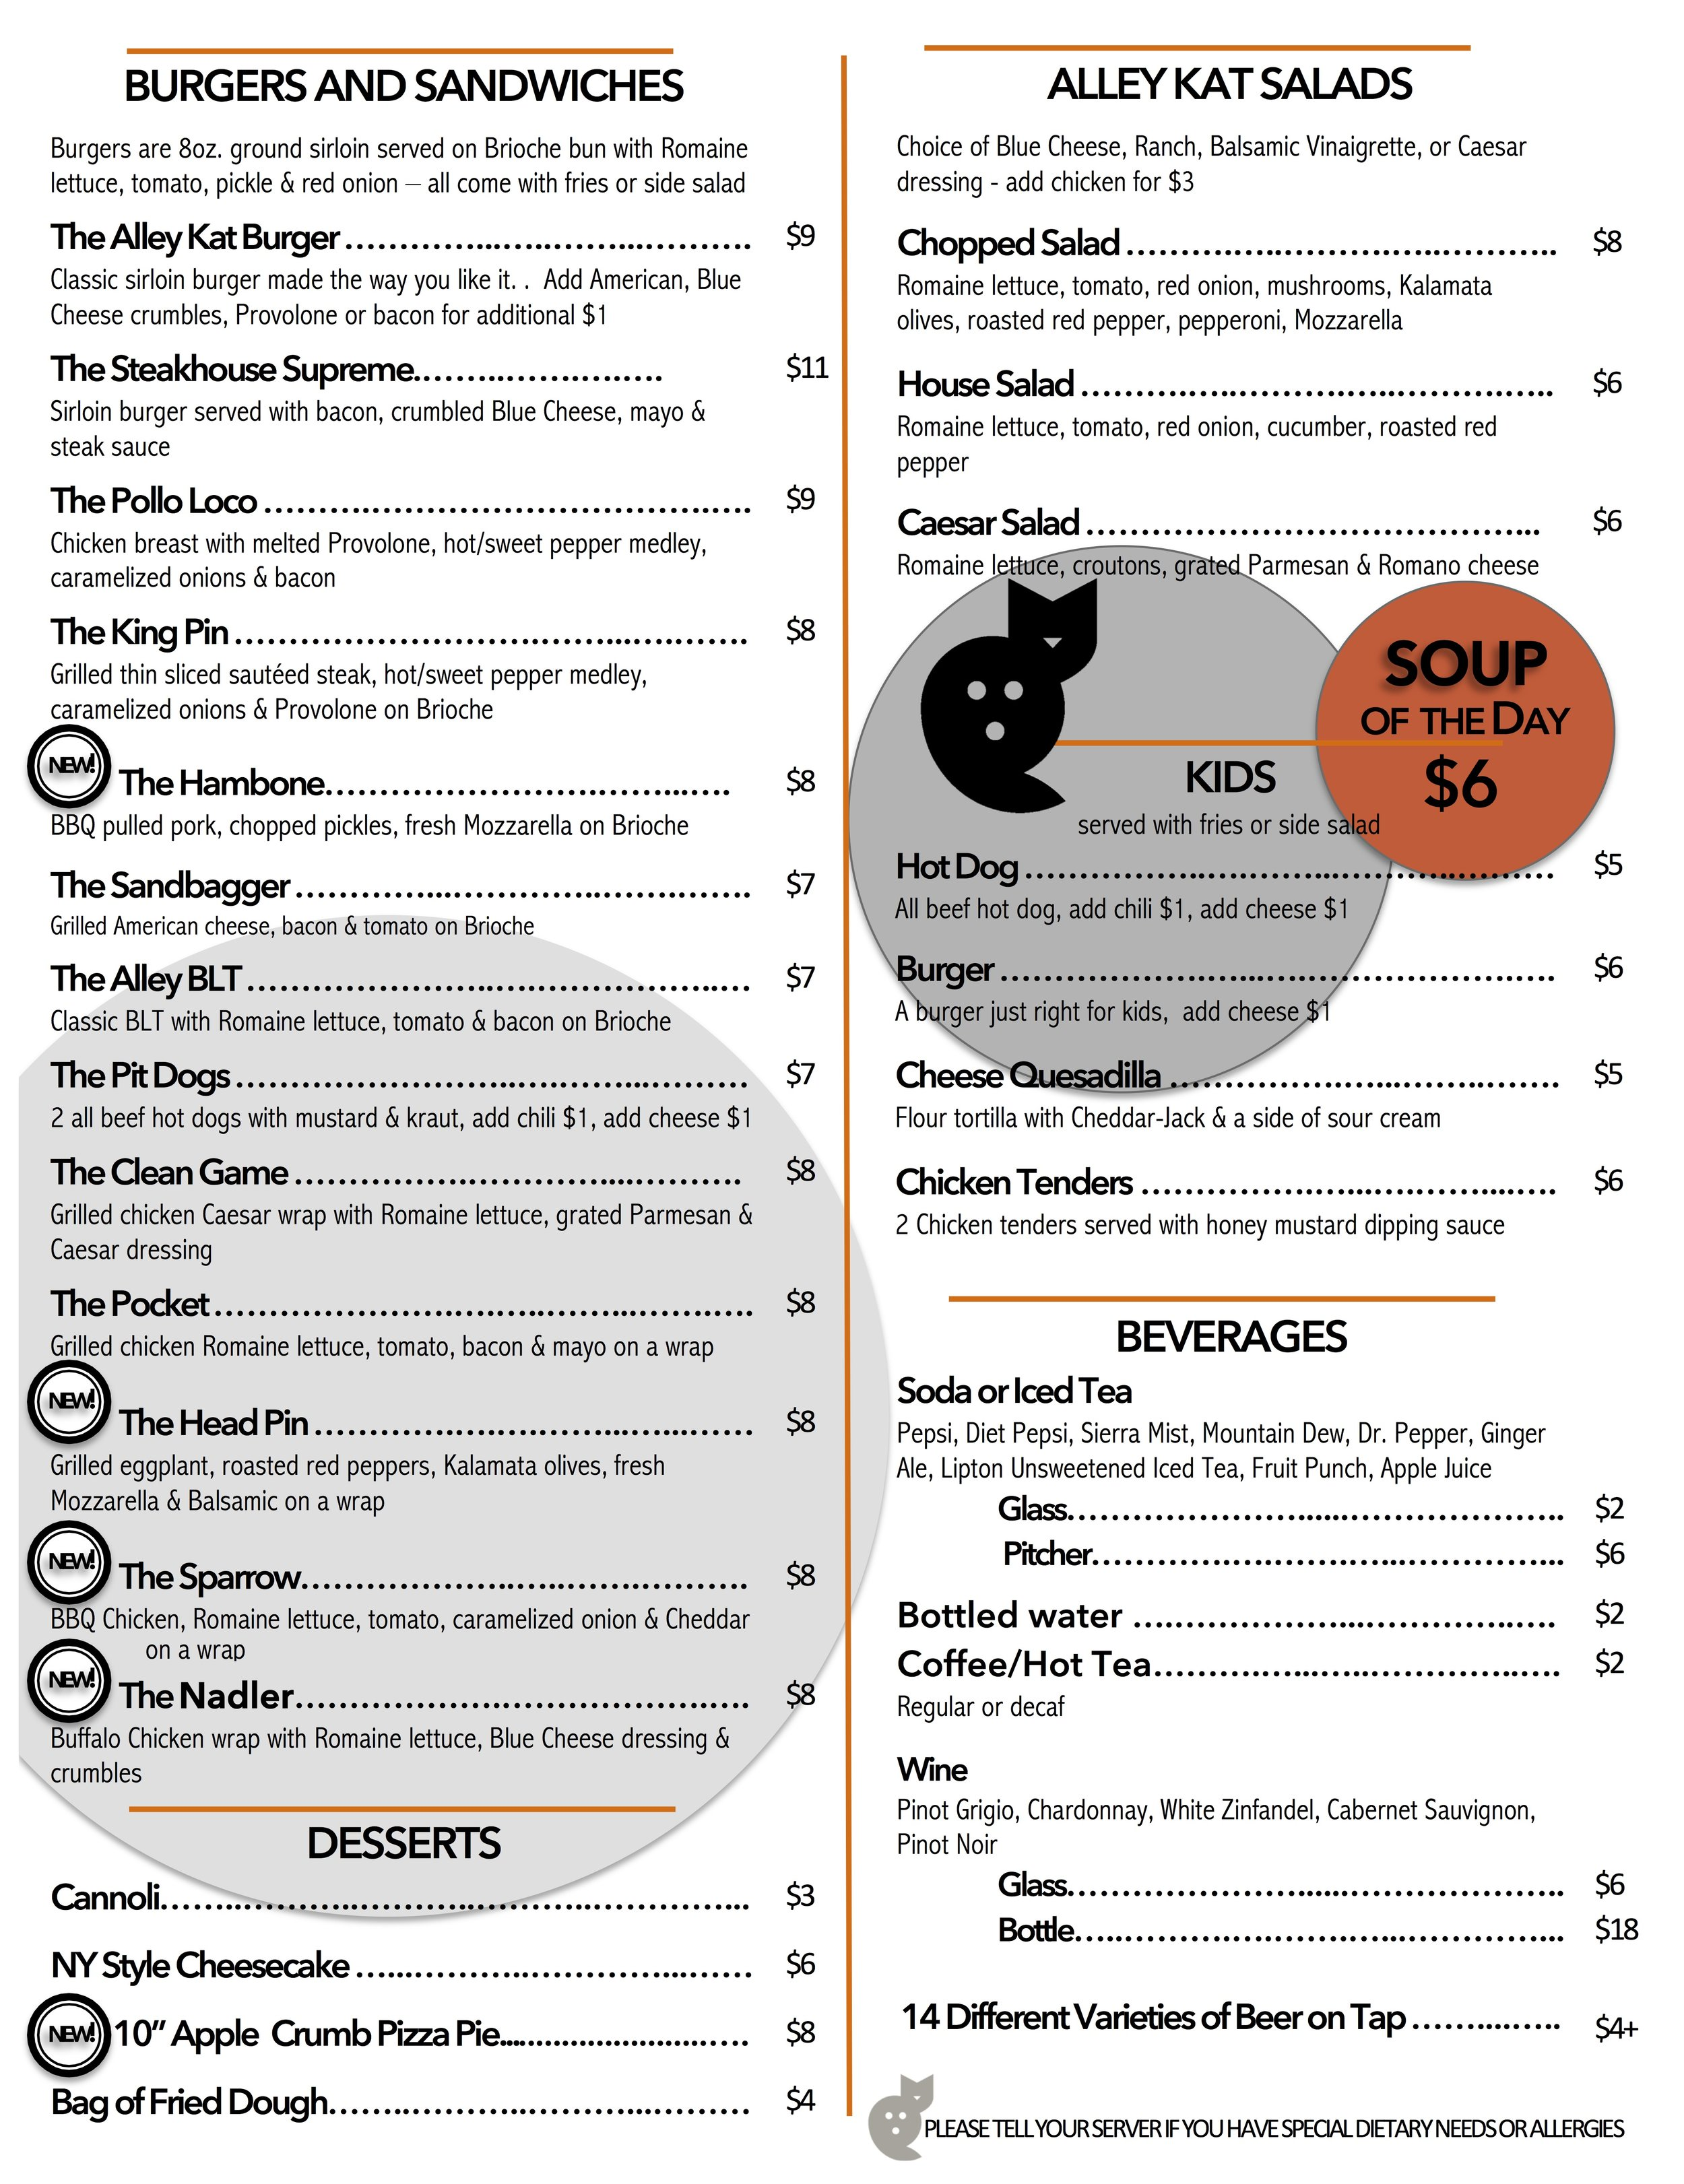 ALLEY KAT FULL MENU V14 P2j.jpg